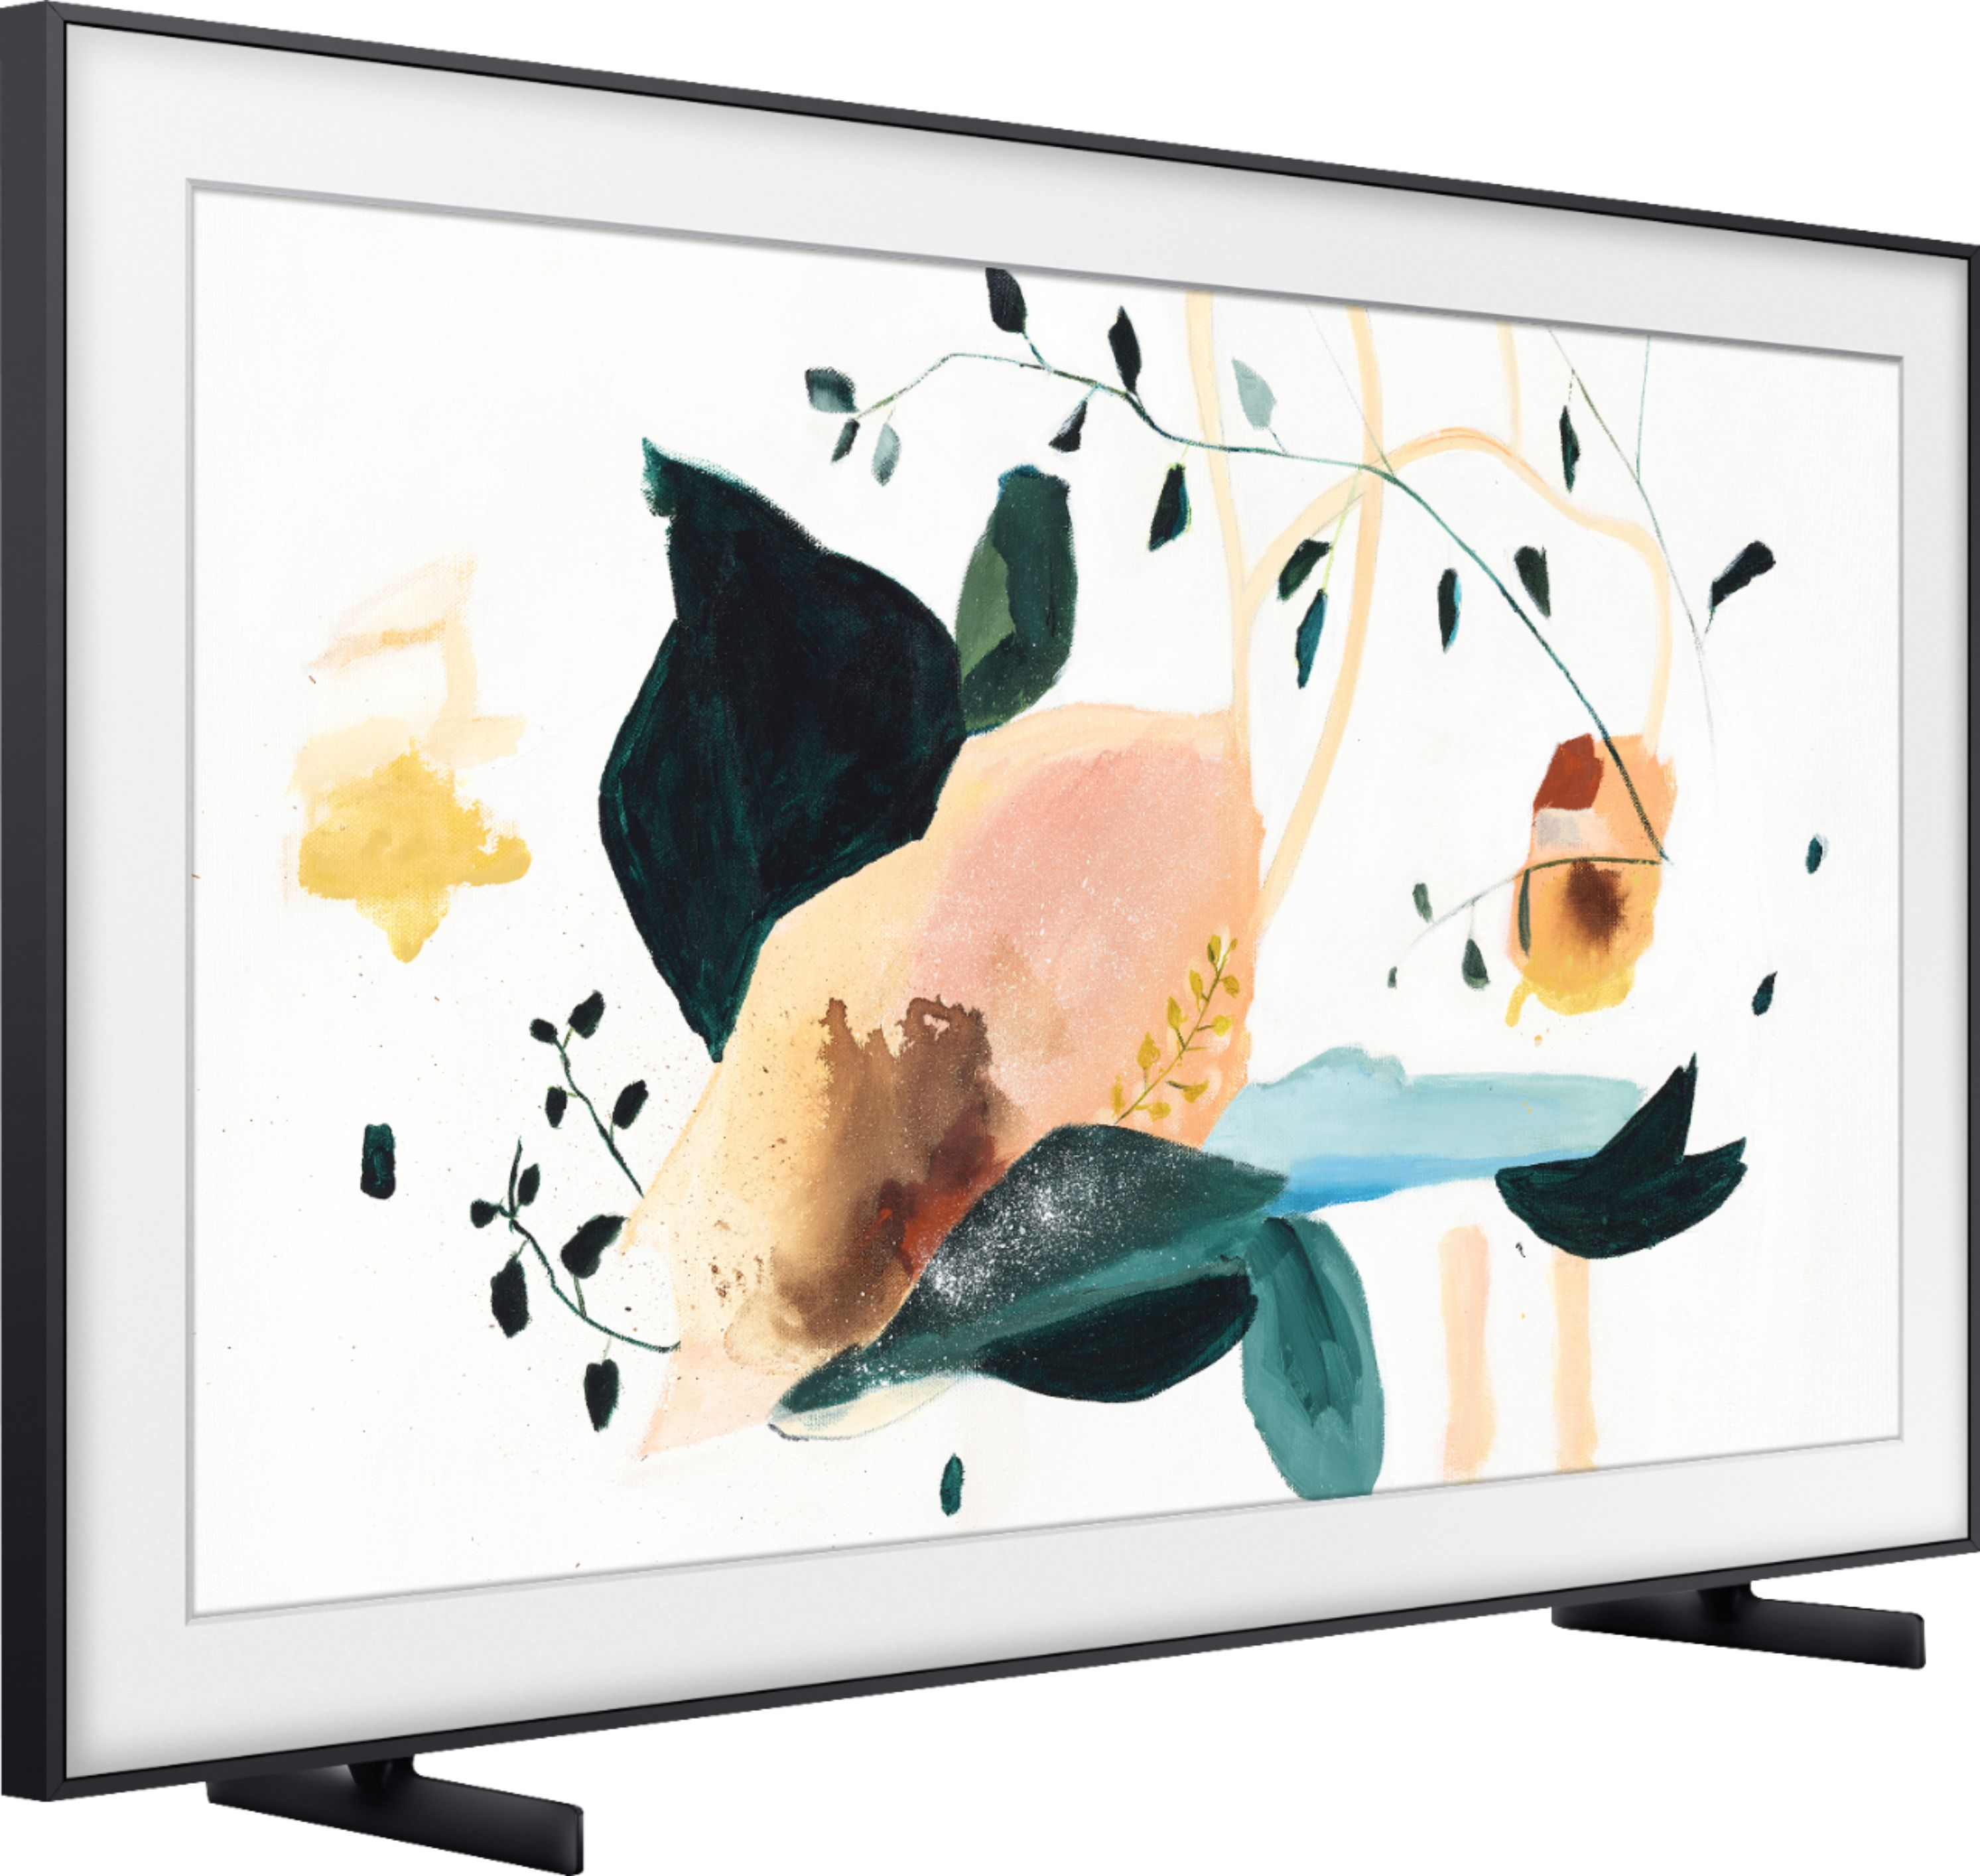 """65"""" The Frame Series 4K UHD TV Smart LED with HDR"""